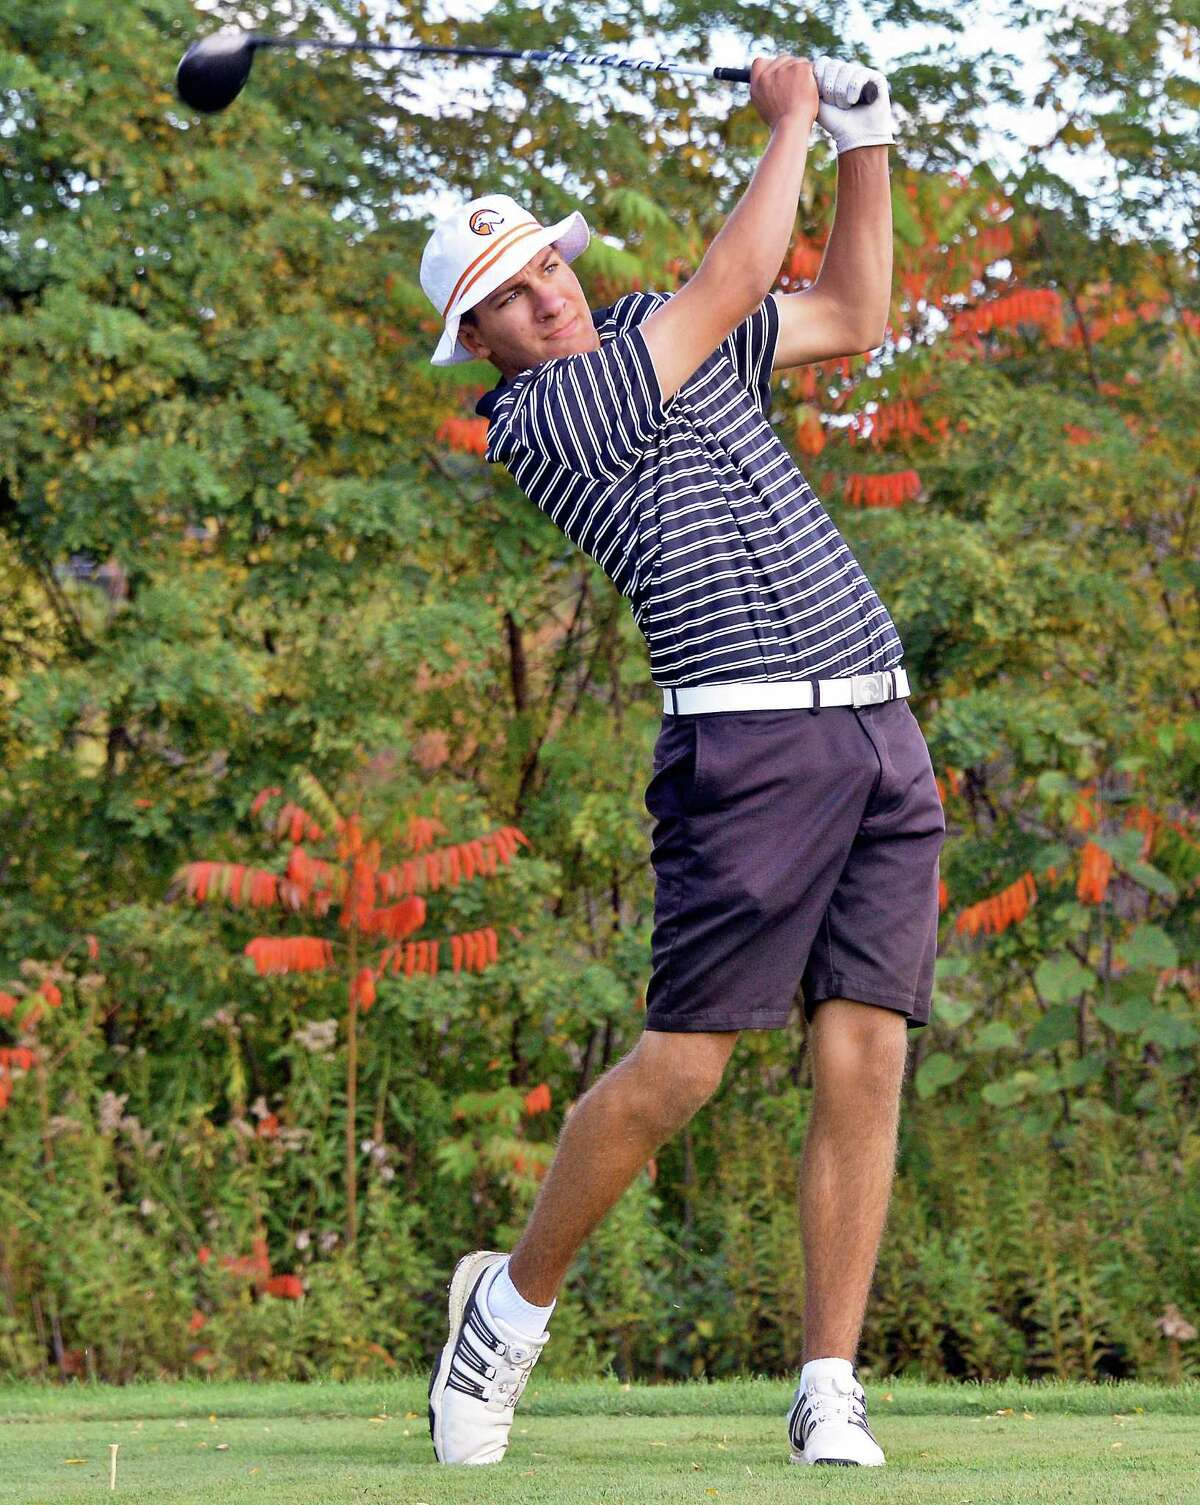 Austin Fox of Bethlehem High in action during the Section II golf state qualifier at Orchard Creek Golf Course Thursday Oct. 12, 2017 in Altamont, NY. (John Carl D'Annibale / Times Union)